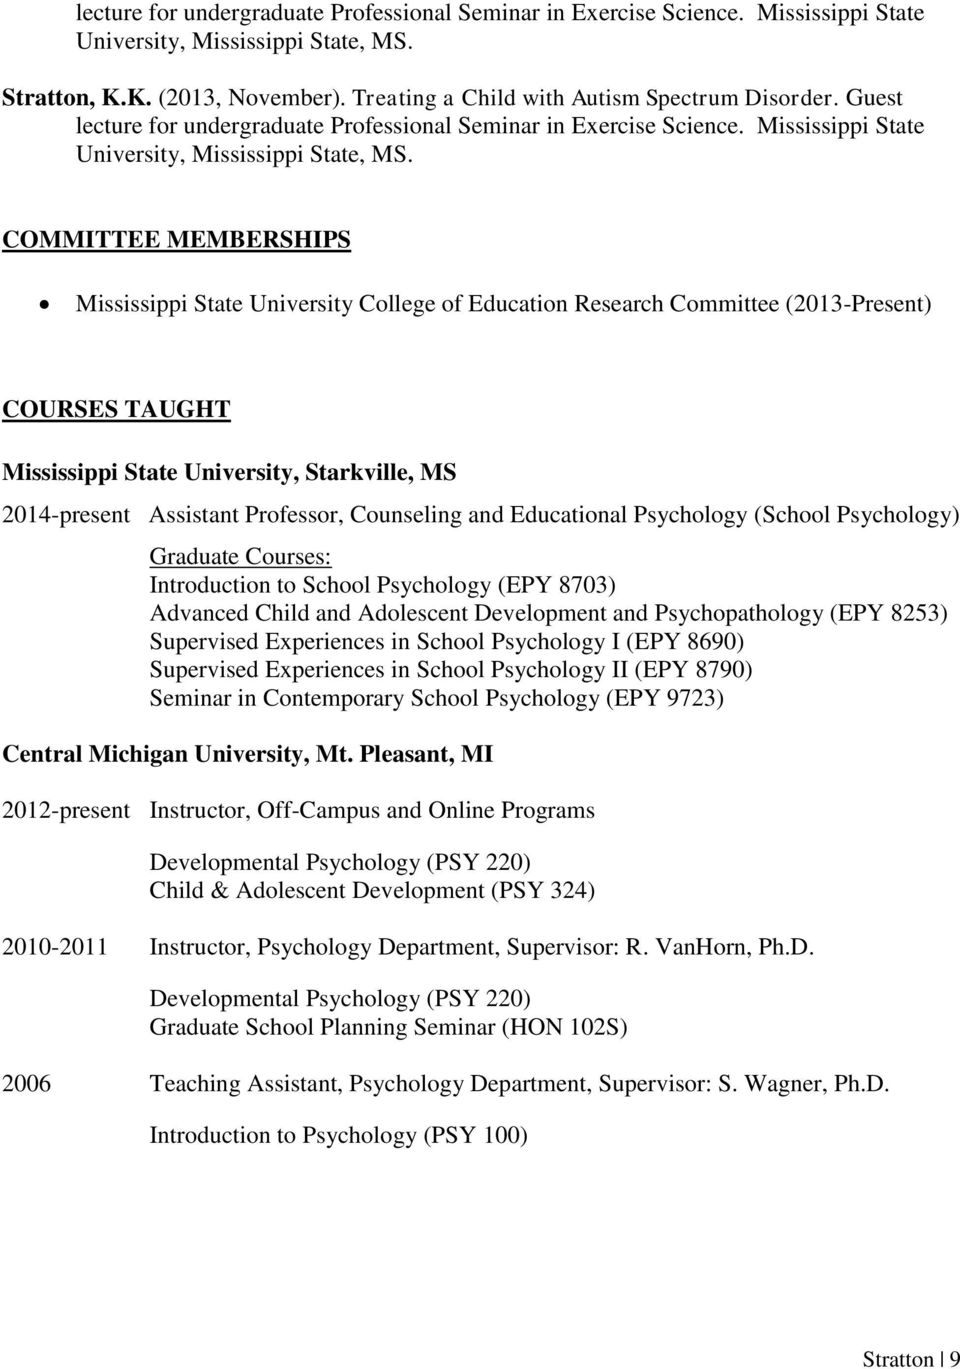 COMMITTEE MEMBERSHIPS Mississippi State University College of Education Research Committee (2013-Present) COURSES TAUGHT Mississippi State University, Starkville, MS 2014-present Assistant Professor,